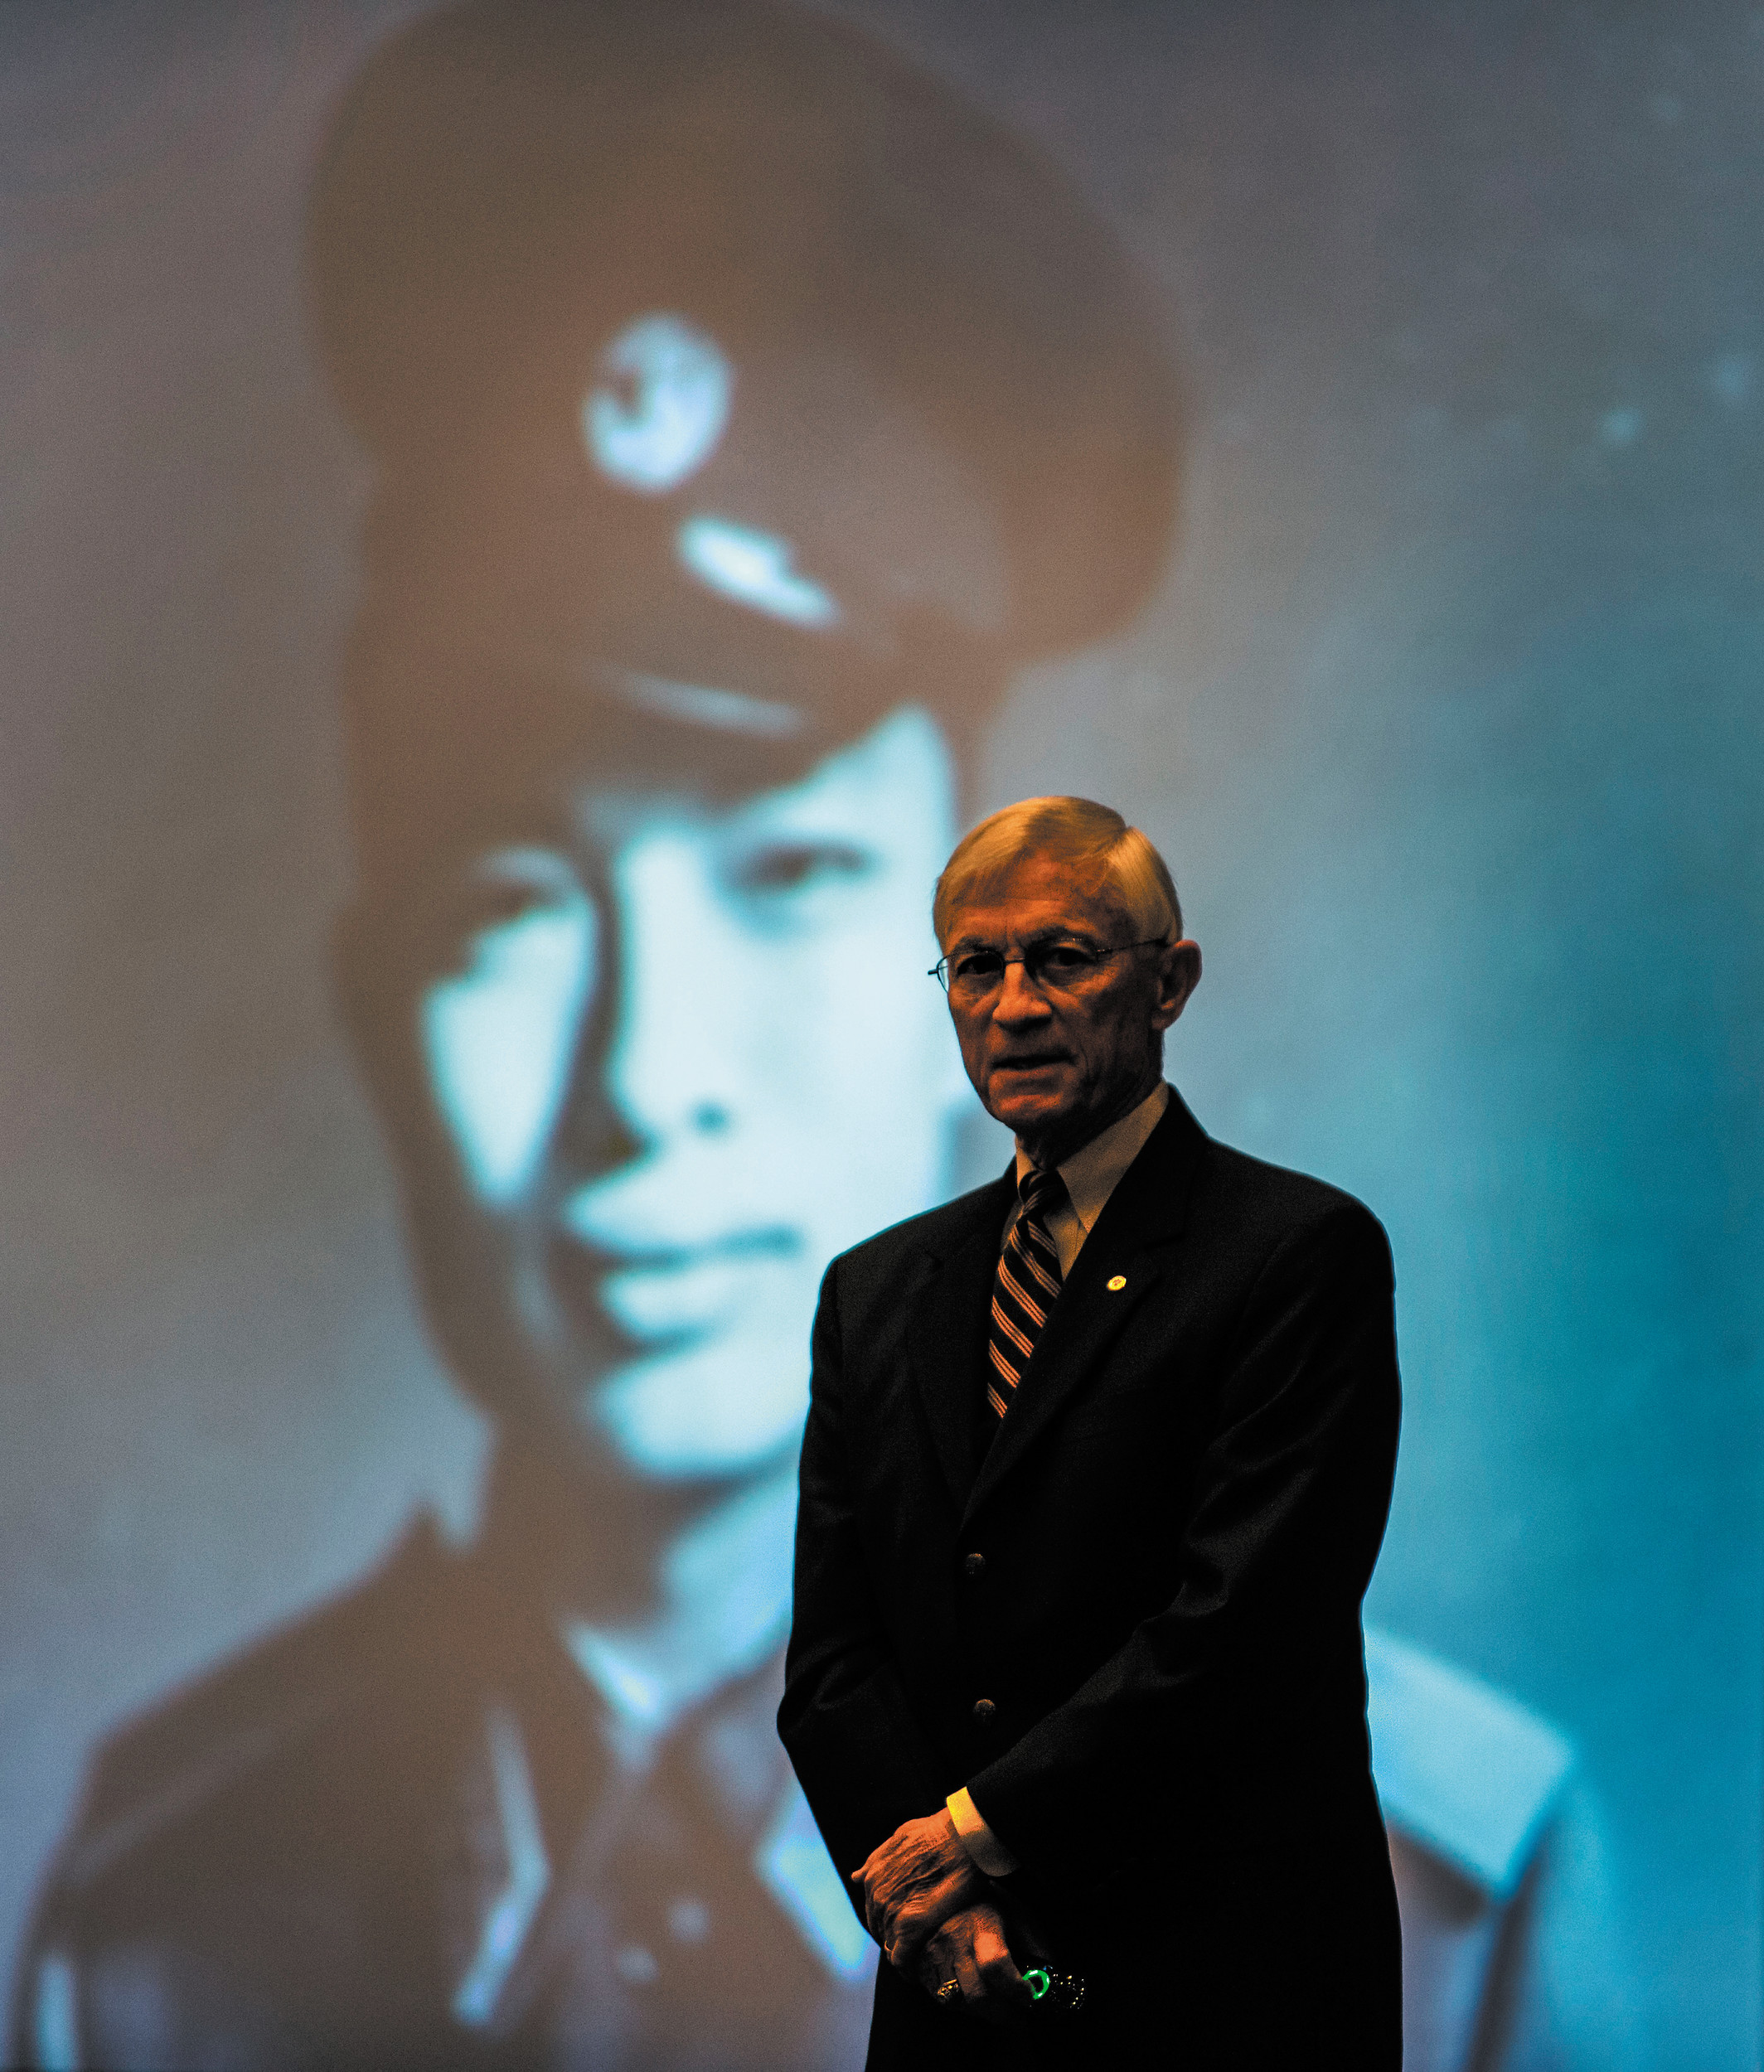 Retired Brig. Gen. Dan Cherry, stands in front of an image of Nguyen Hong My, a North Vietnamese fighter pilot he shot down over Hanoi in 1972. Cherry served as keynote speaker for the 2014 Colorado Aviation Business Association luncheon, Thursday, June 19 at The Wildlife Experience in Parker. Cherry recalled the story of how he was reunited with Hong My more than three decades later to become friends. The annual luncheon kicked off Colorado General Aviation Appreciation Week, which showcases how aviation plays a significant role in the state's economy.